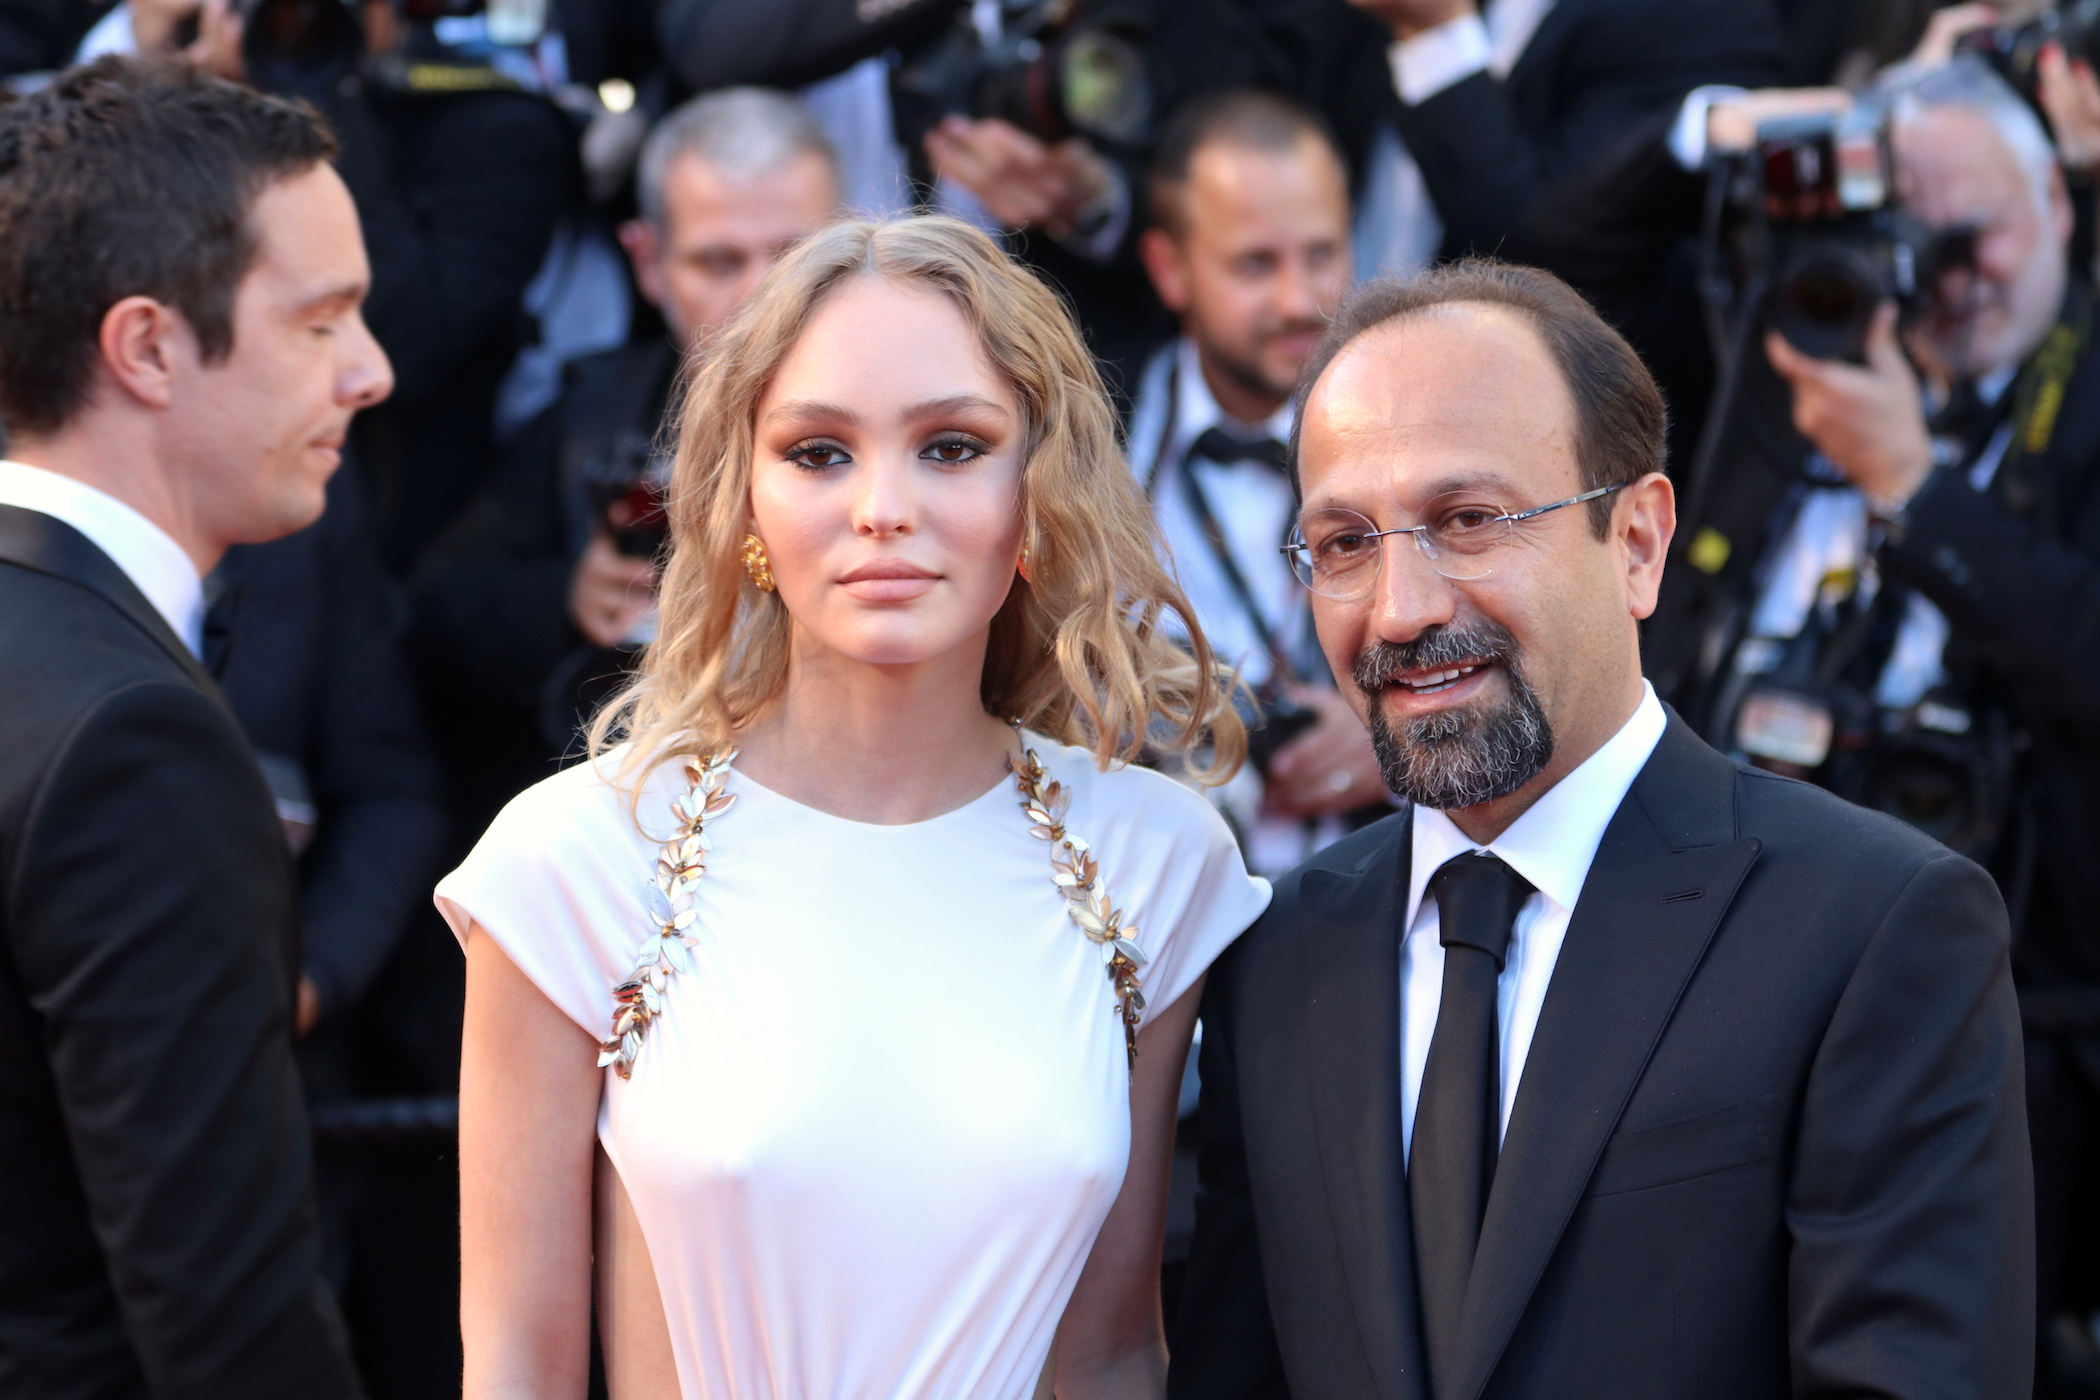 Cannes 2017: uno scatto di Lily-Rose Depp e Asghar Farhadi sul red carpet inaugurale